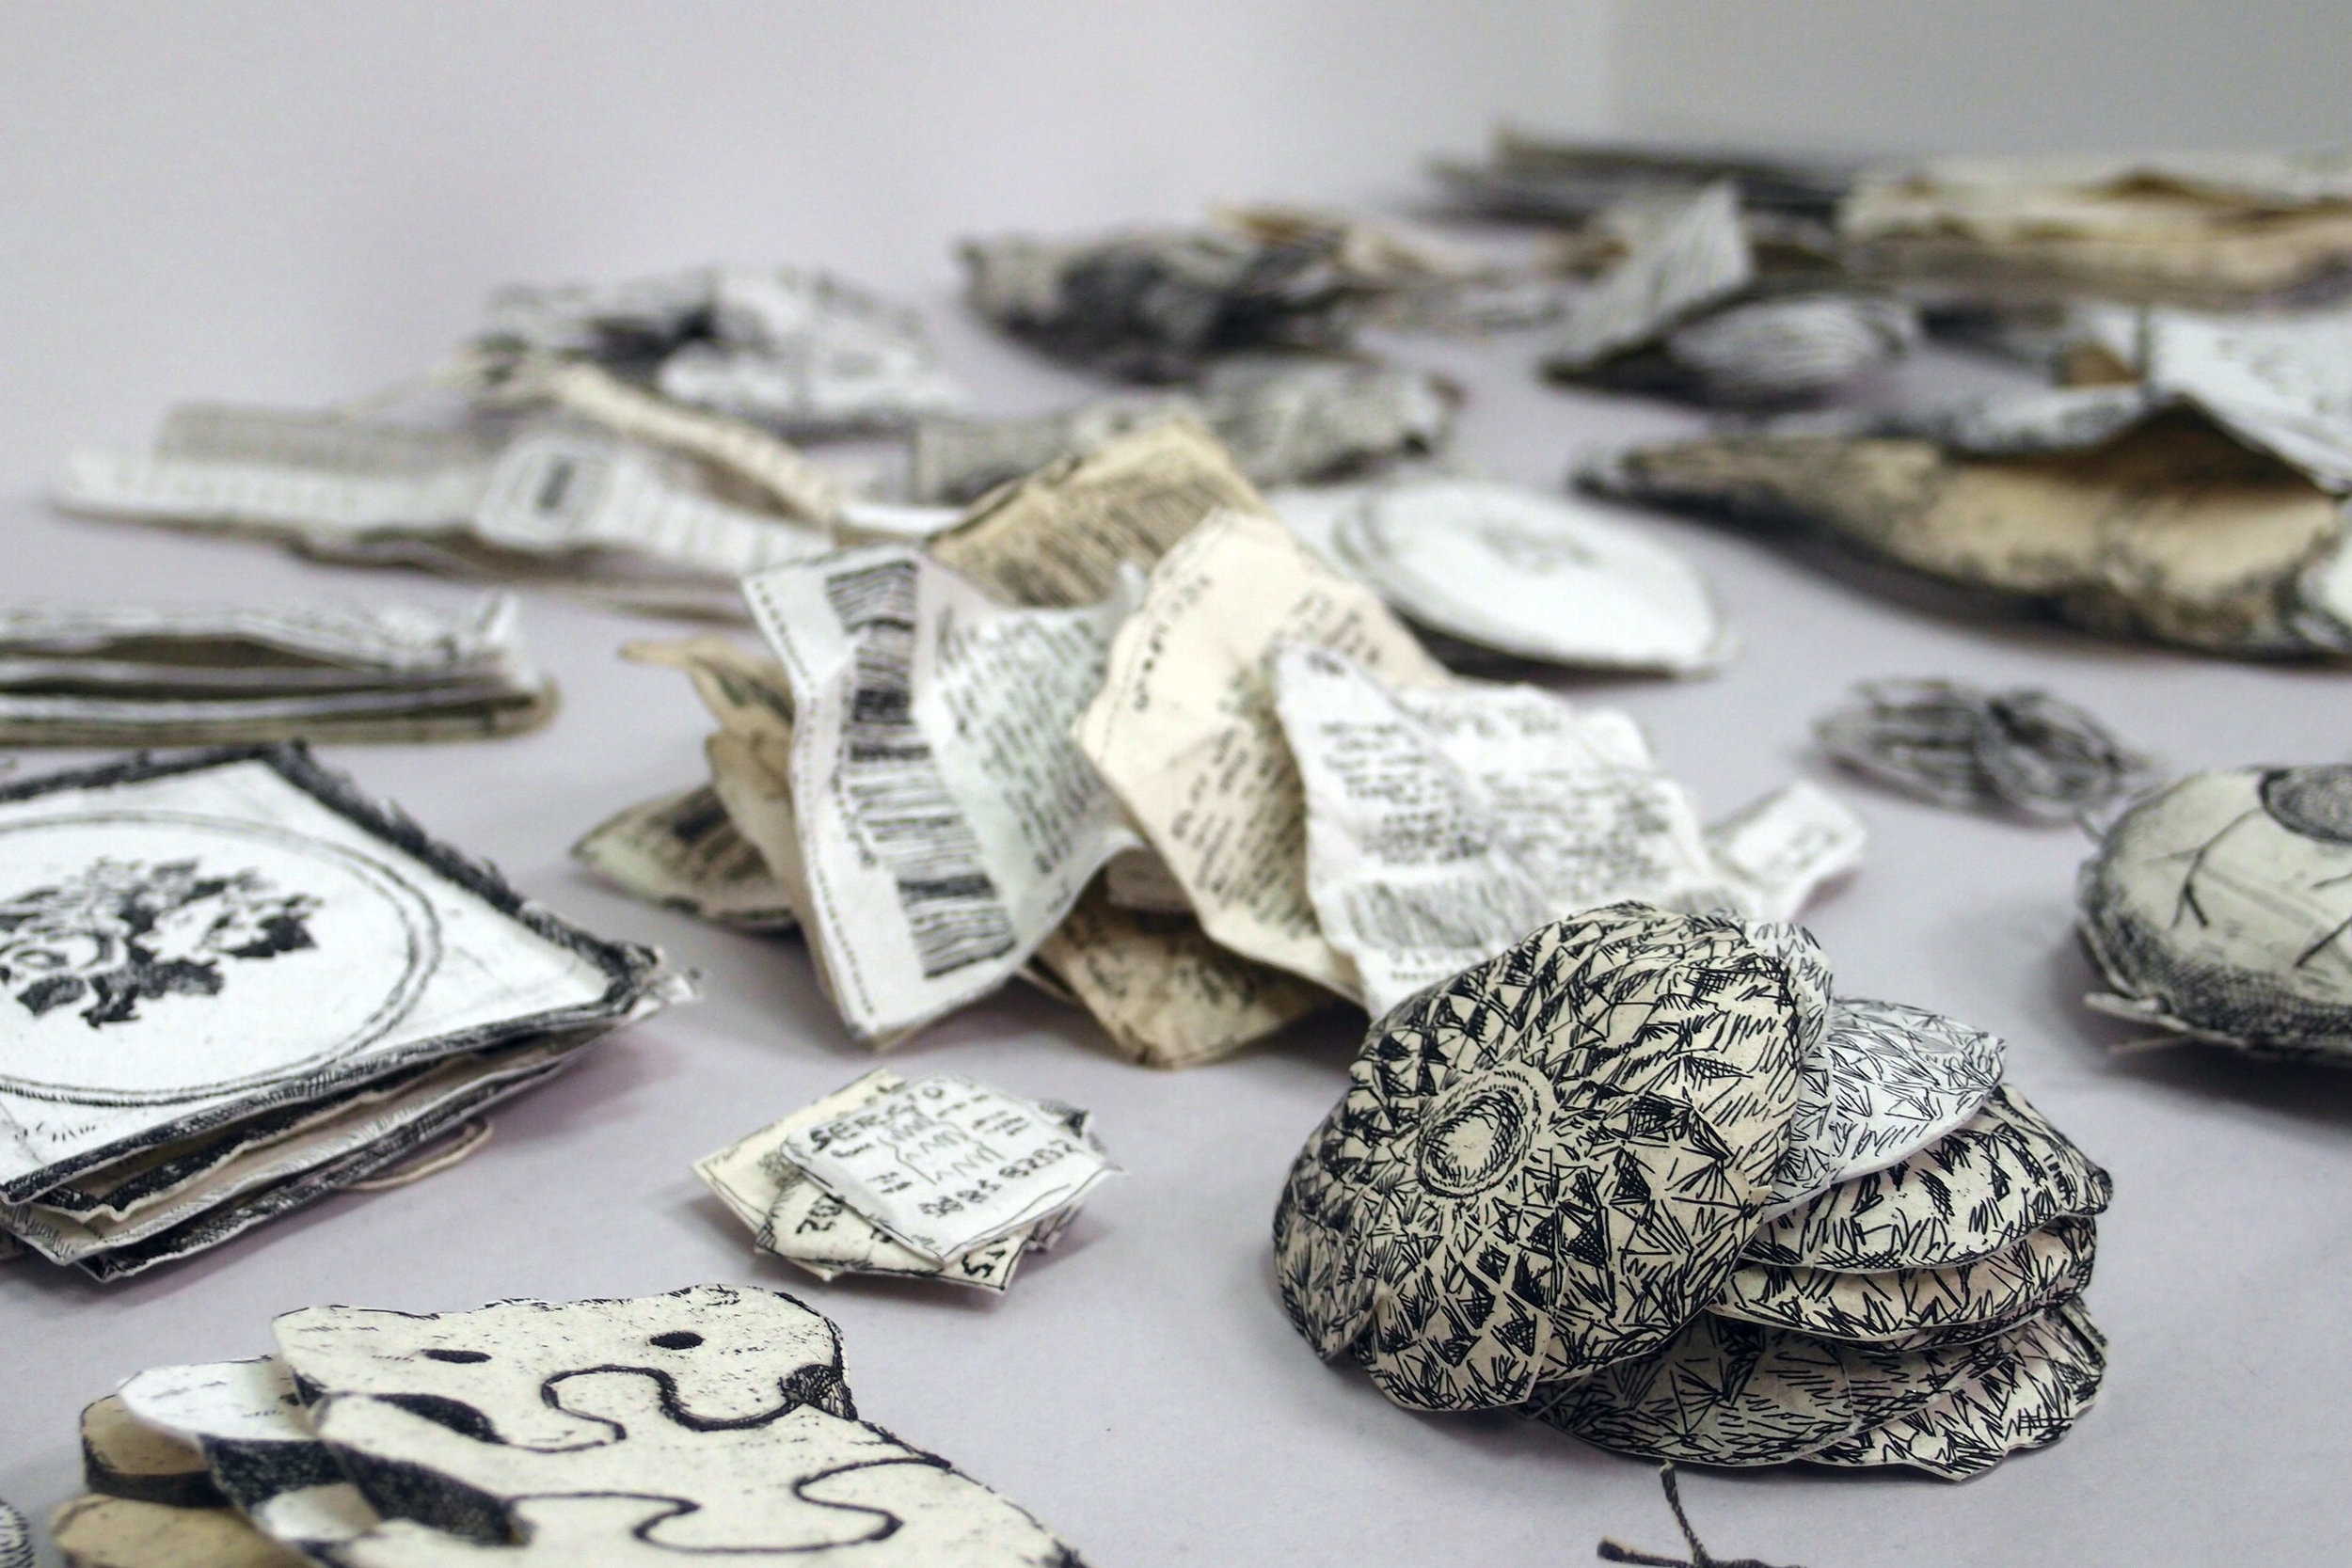 4_Carolyn Hawkins_Private Assemblage (detail)_2014.JPG